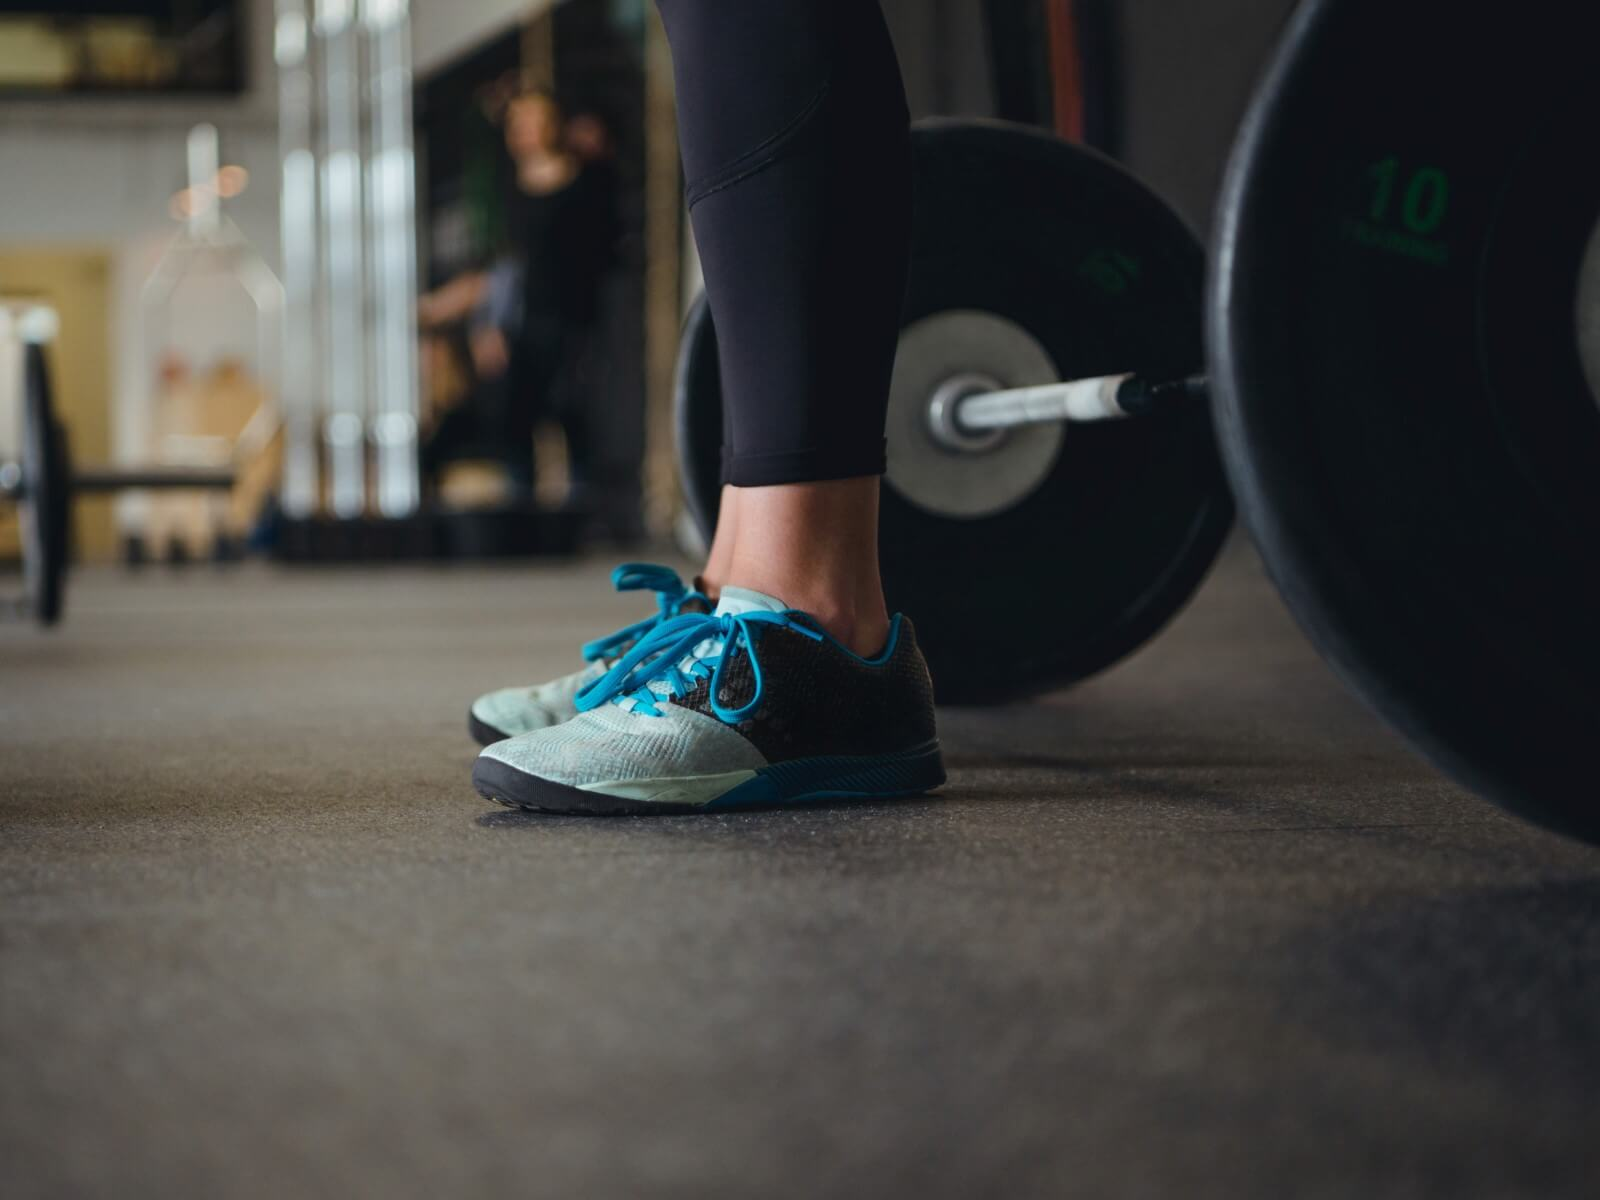 Woman standing in front of barbell wearing teal and black women's weightlifting shoes in gym.